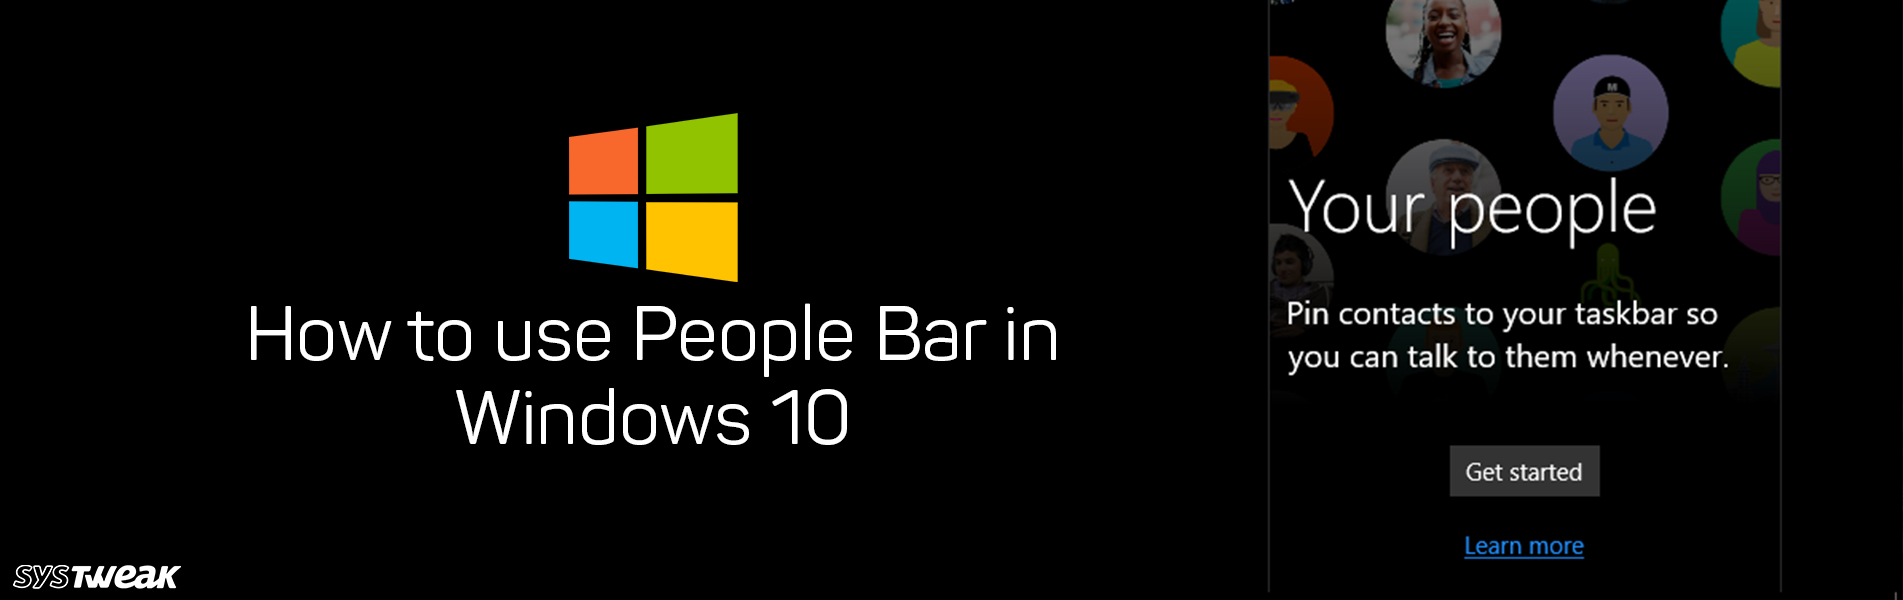 How to Use People Bar in Windows 10